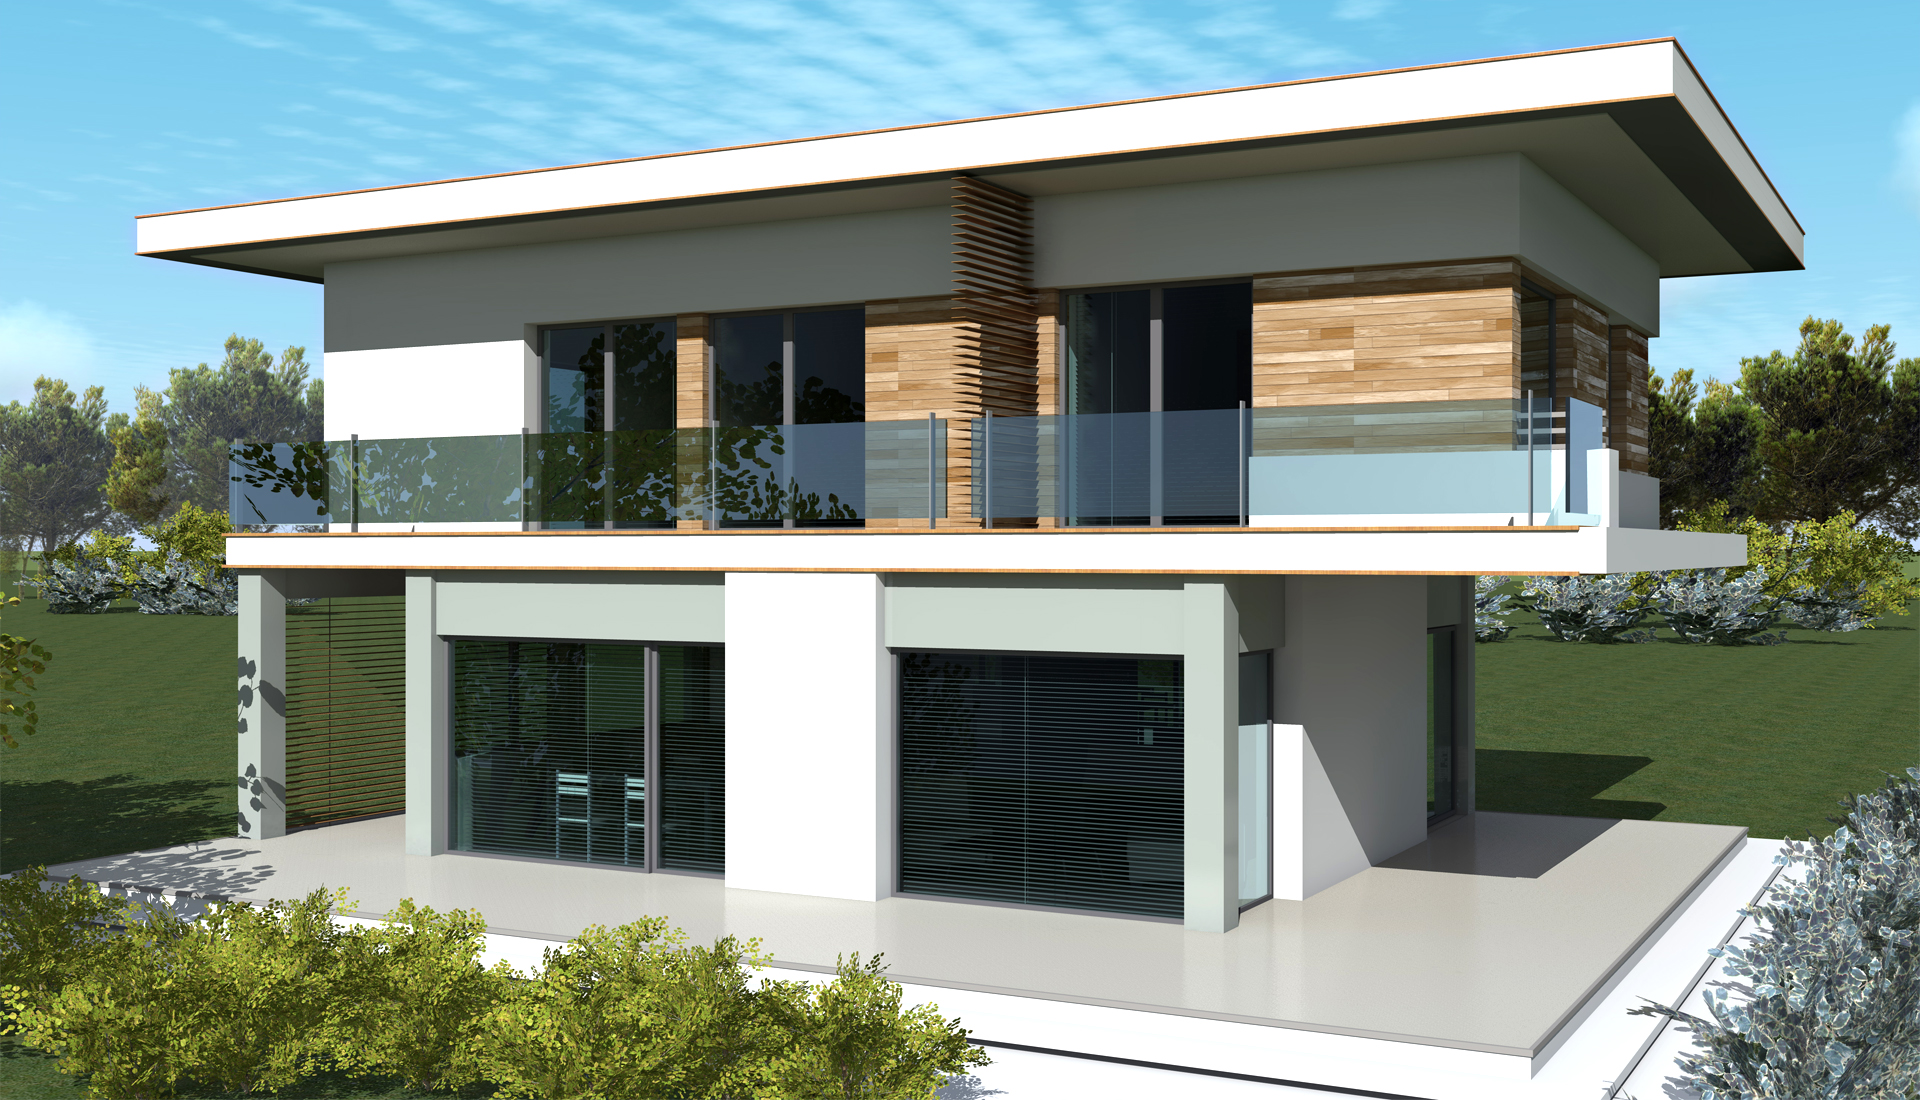 Plan maison contemporaine is 10 150m2 for Maison style moderne